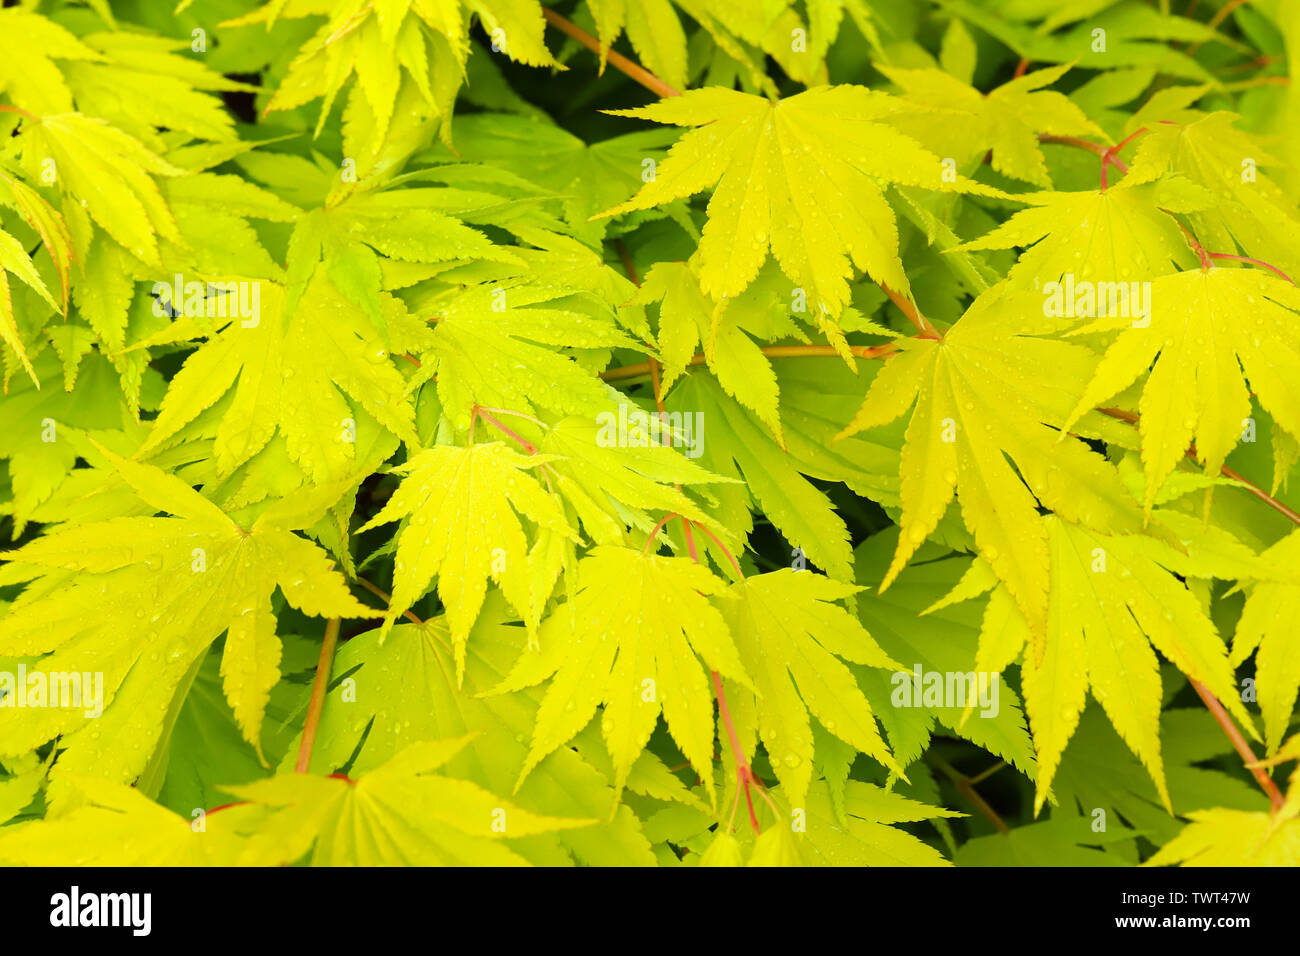 Close Up Detail Of Fresh Lime Green Leaves On My Japanese Maple